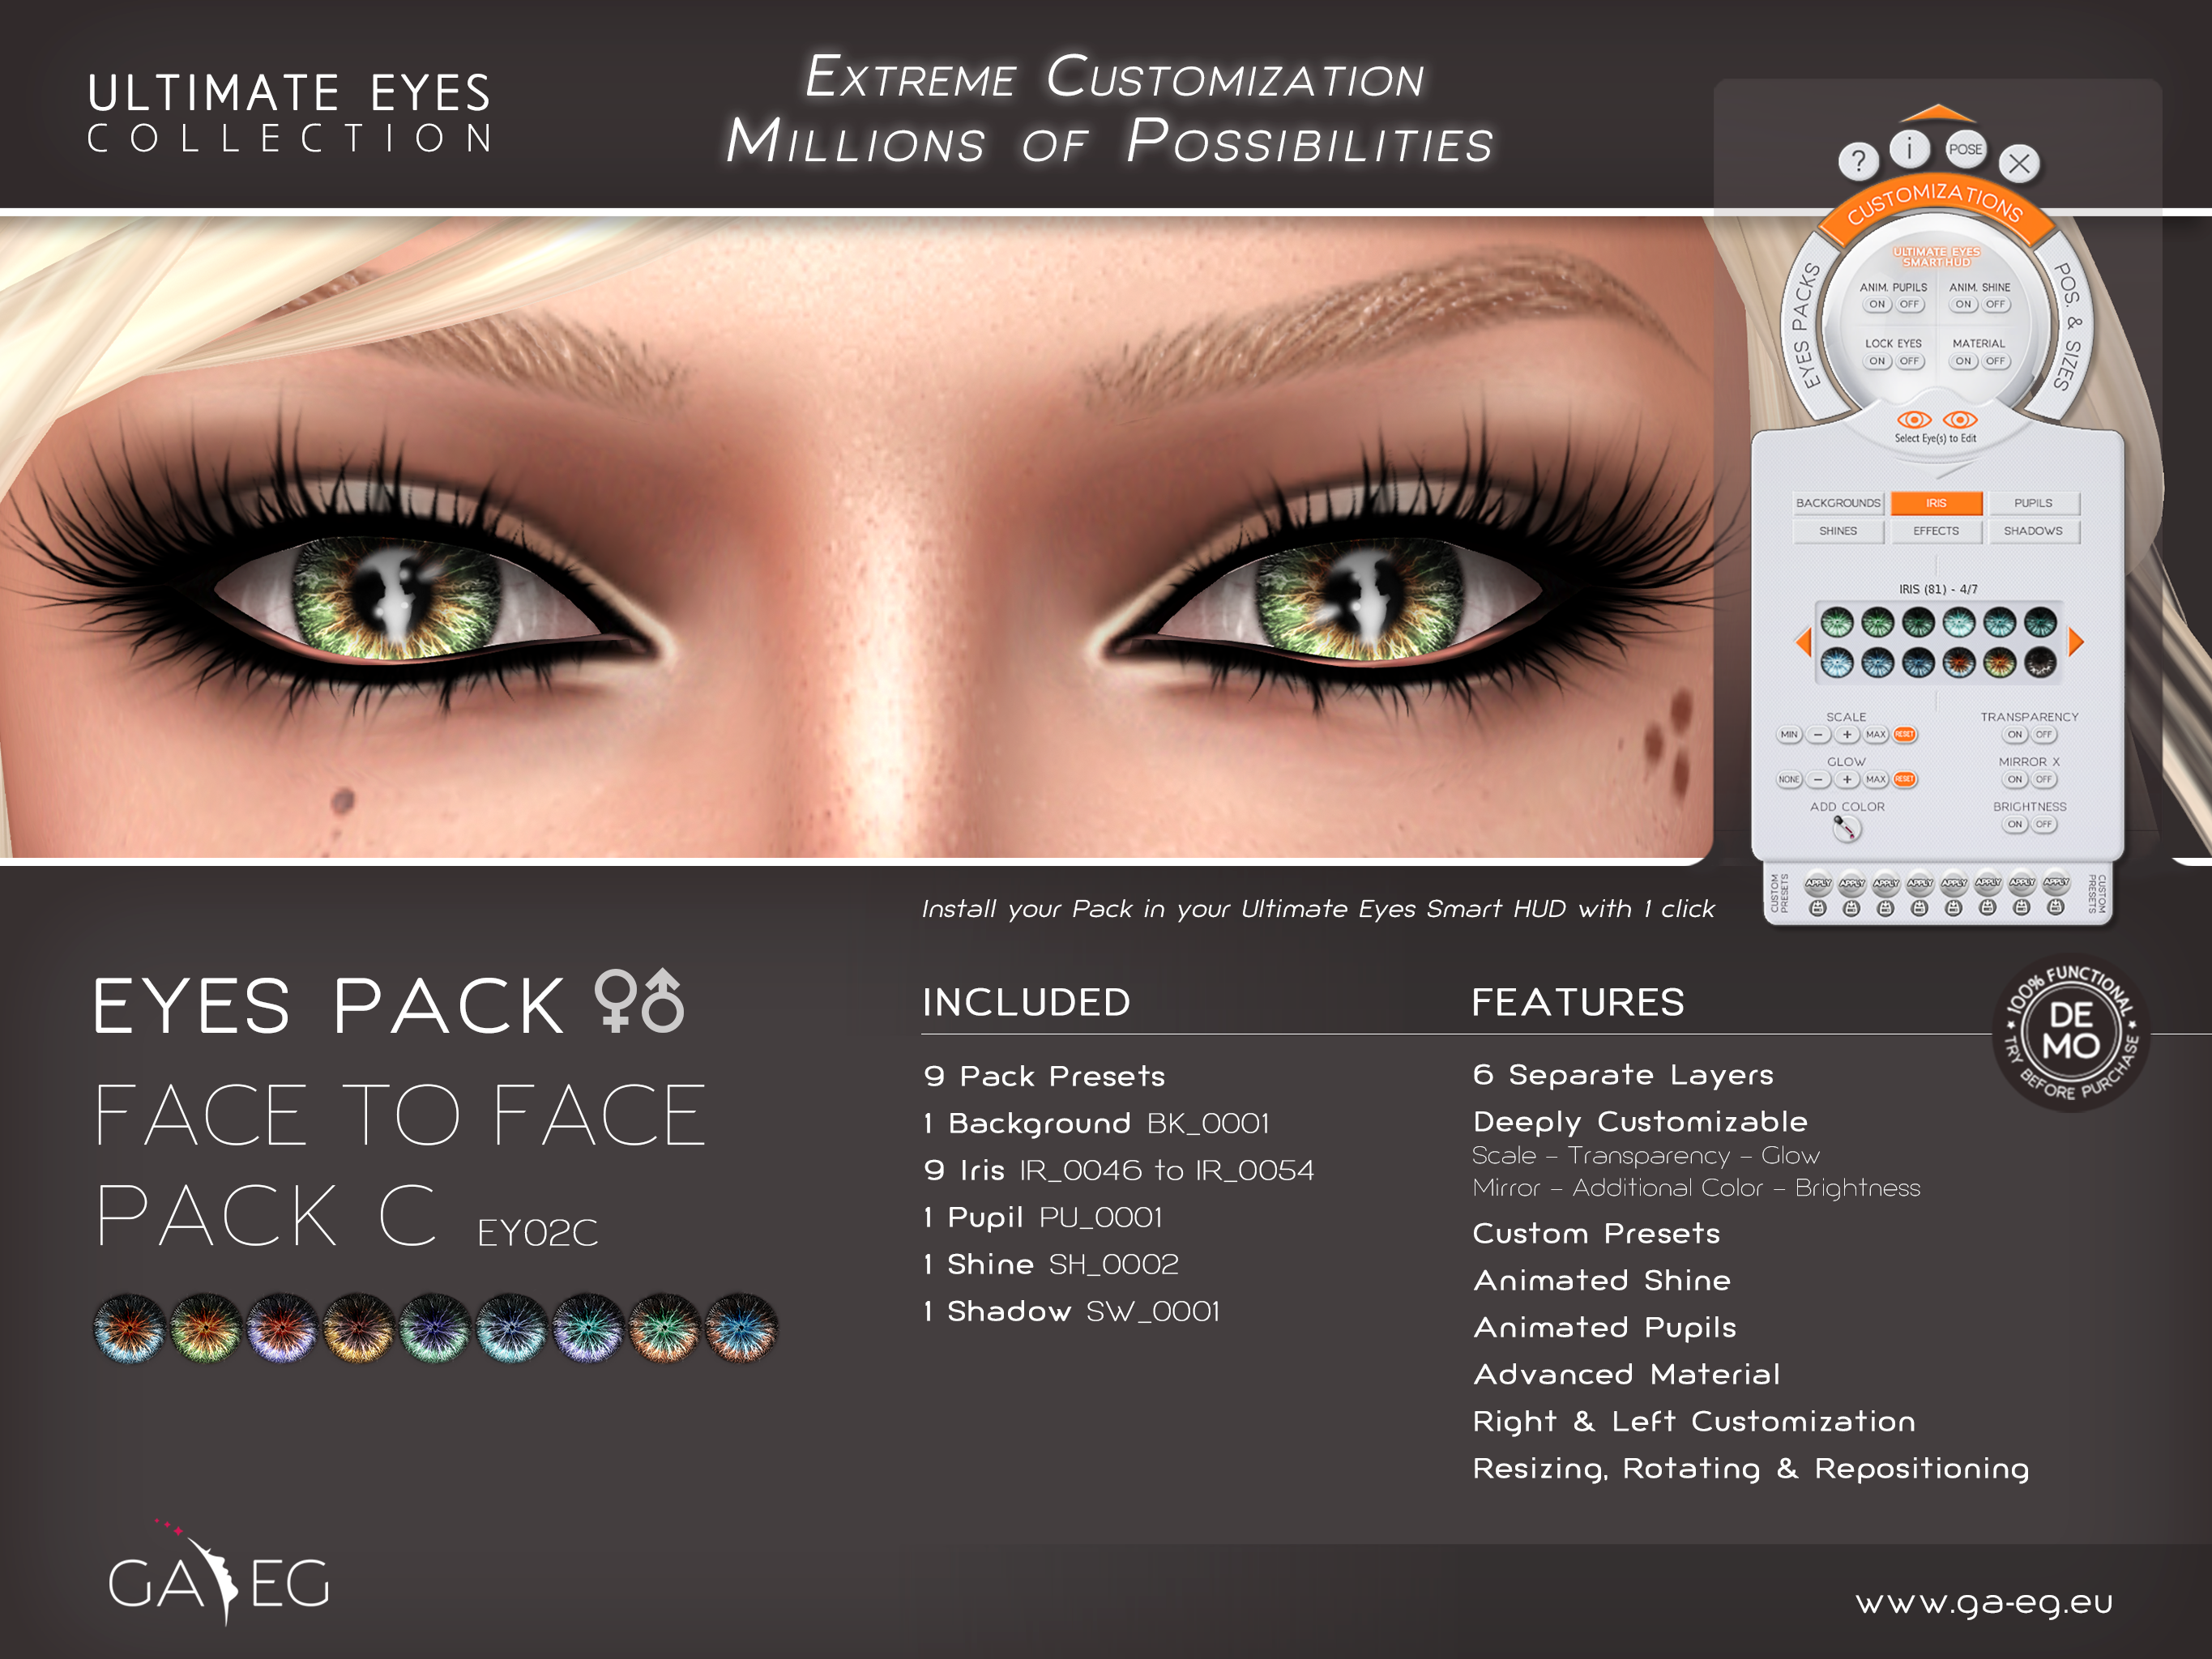 Ultimate Eyes Pack - EY02C Face To Face Pack C